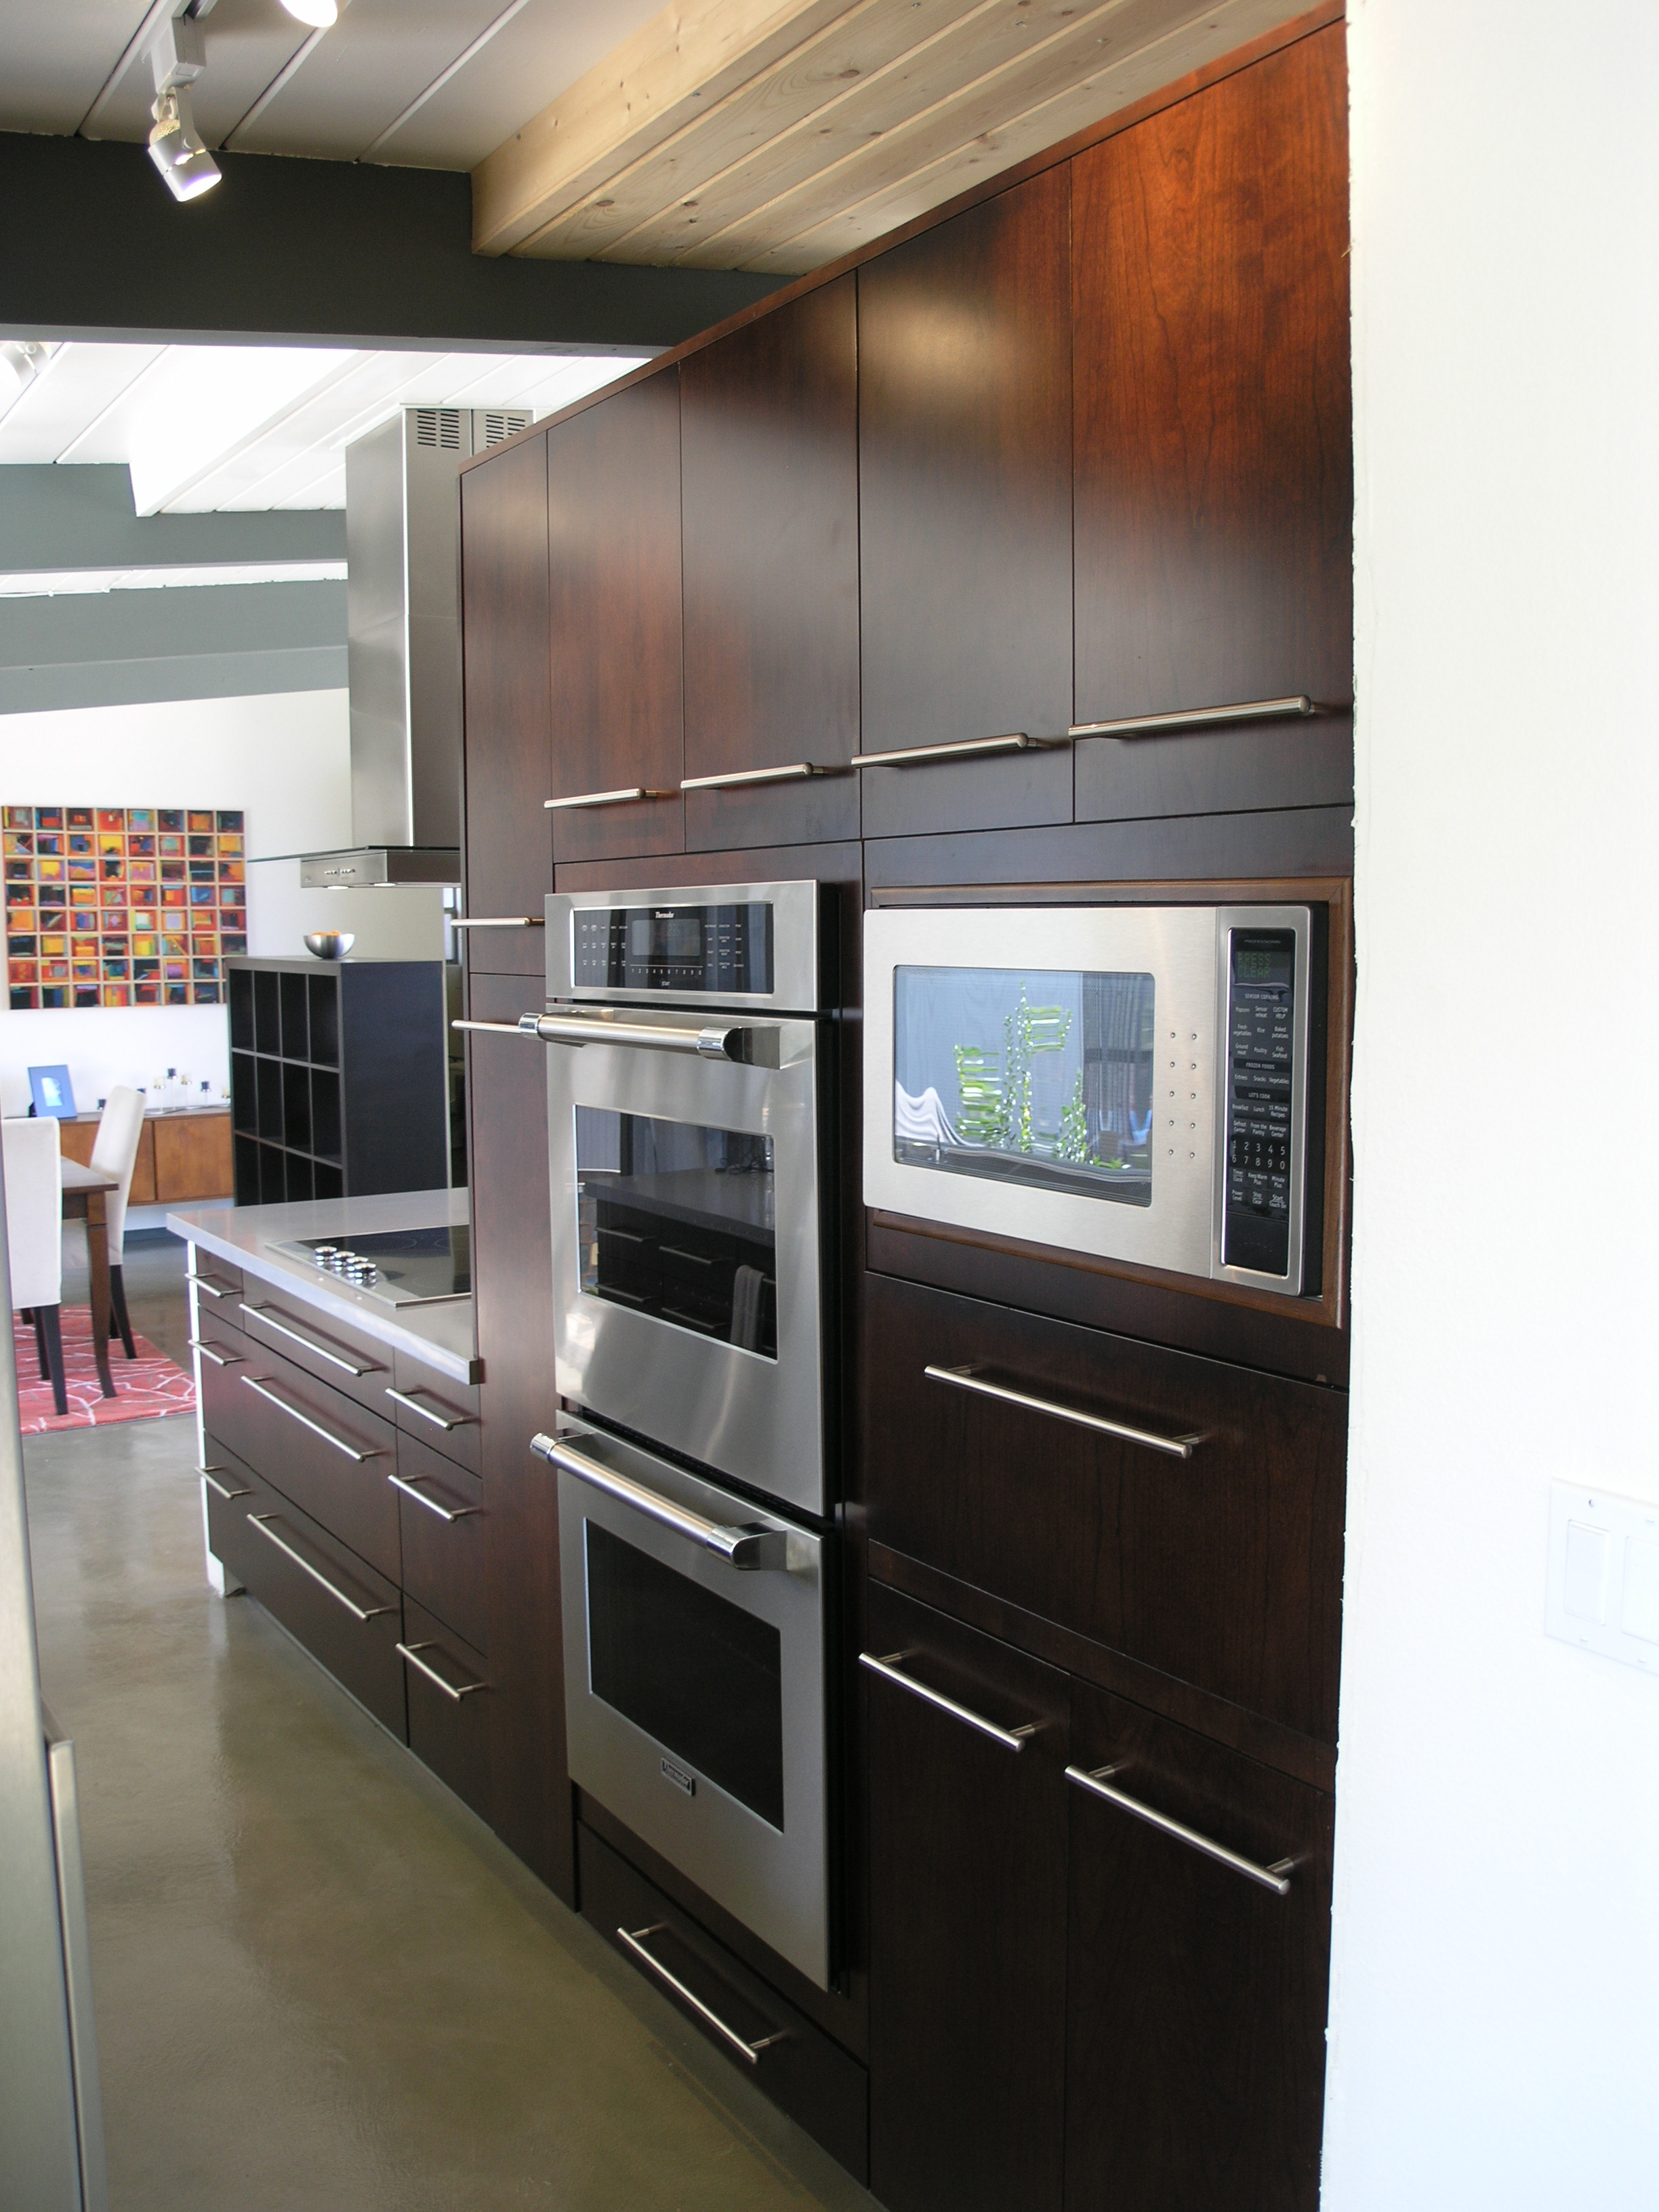 designed by chris beck full kitchen remodel by stone age